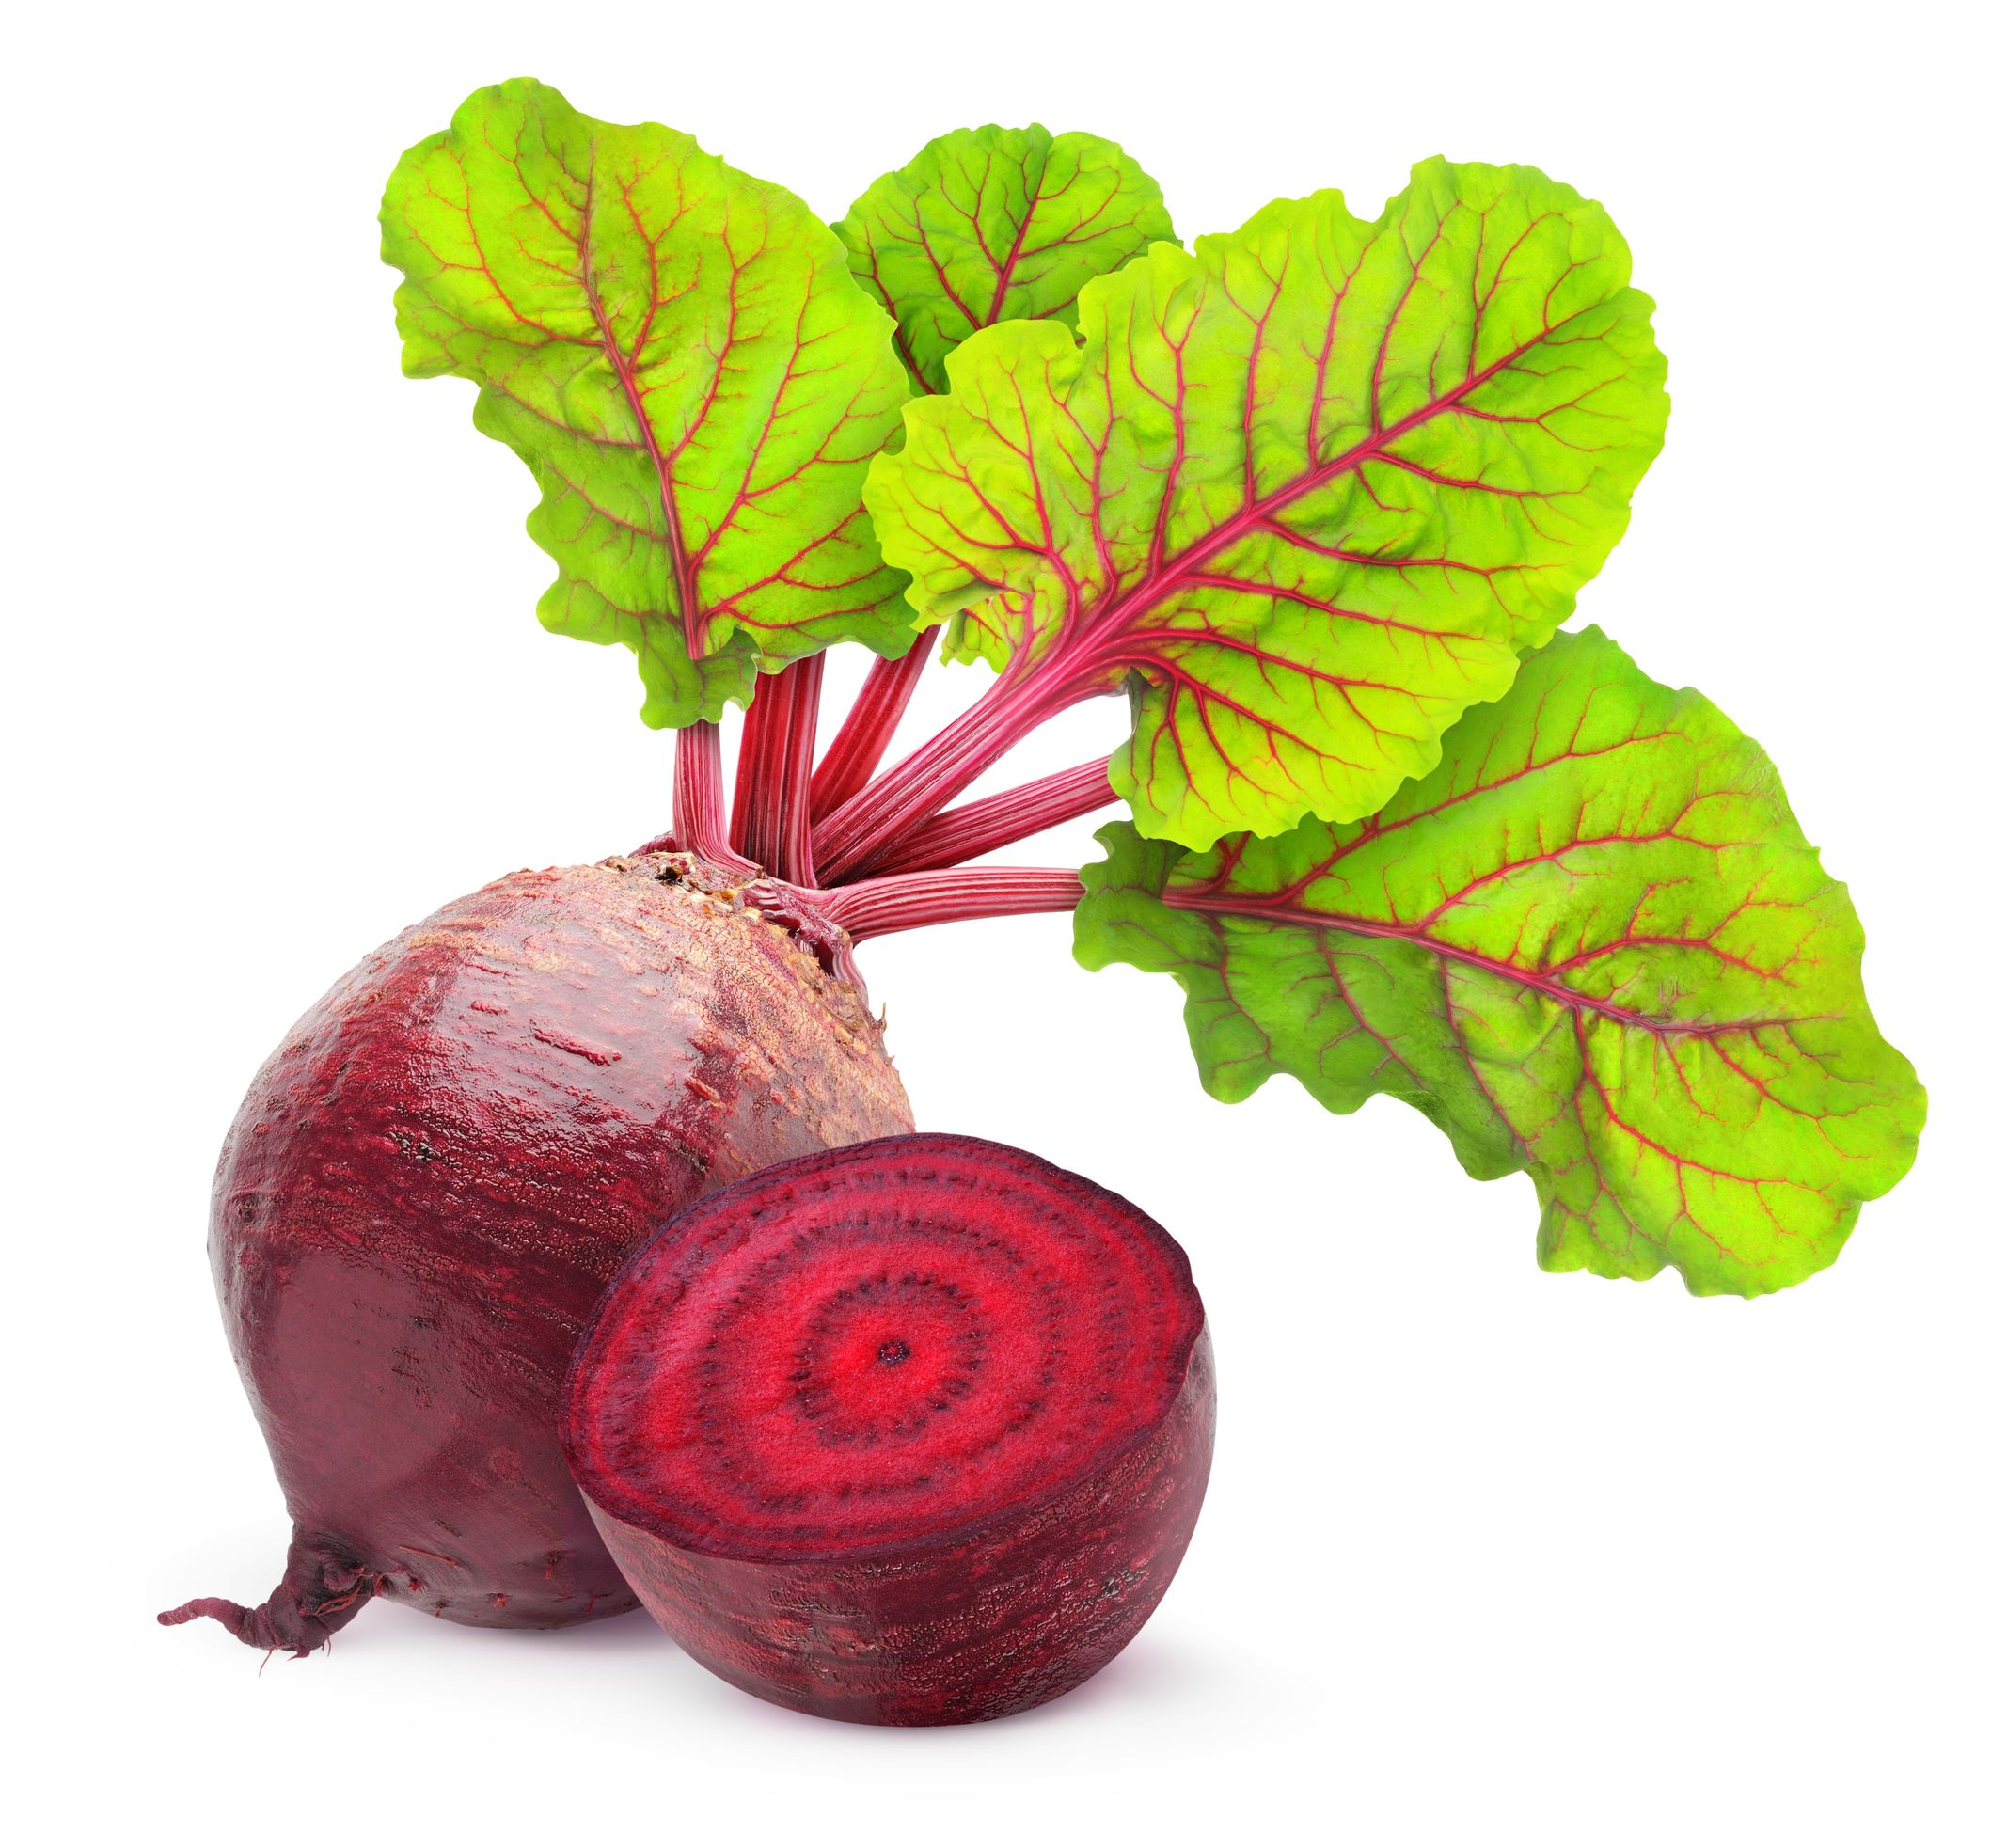 Listen to the Beet